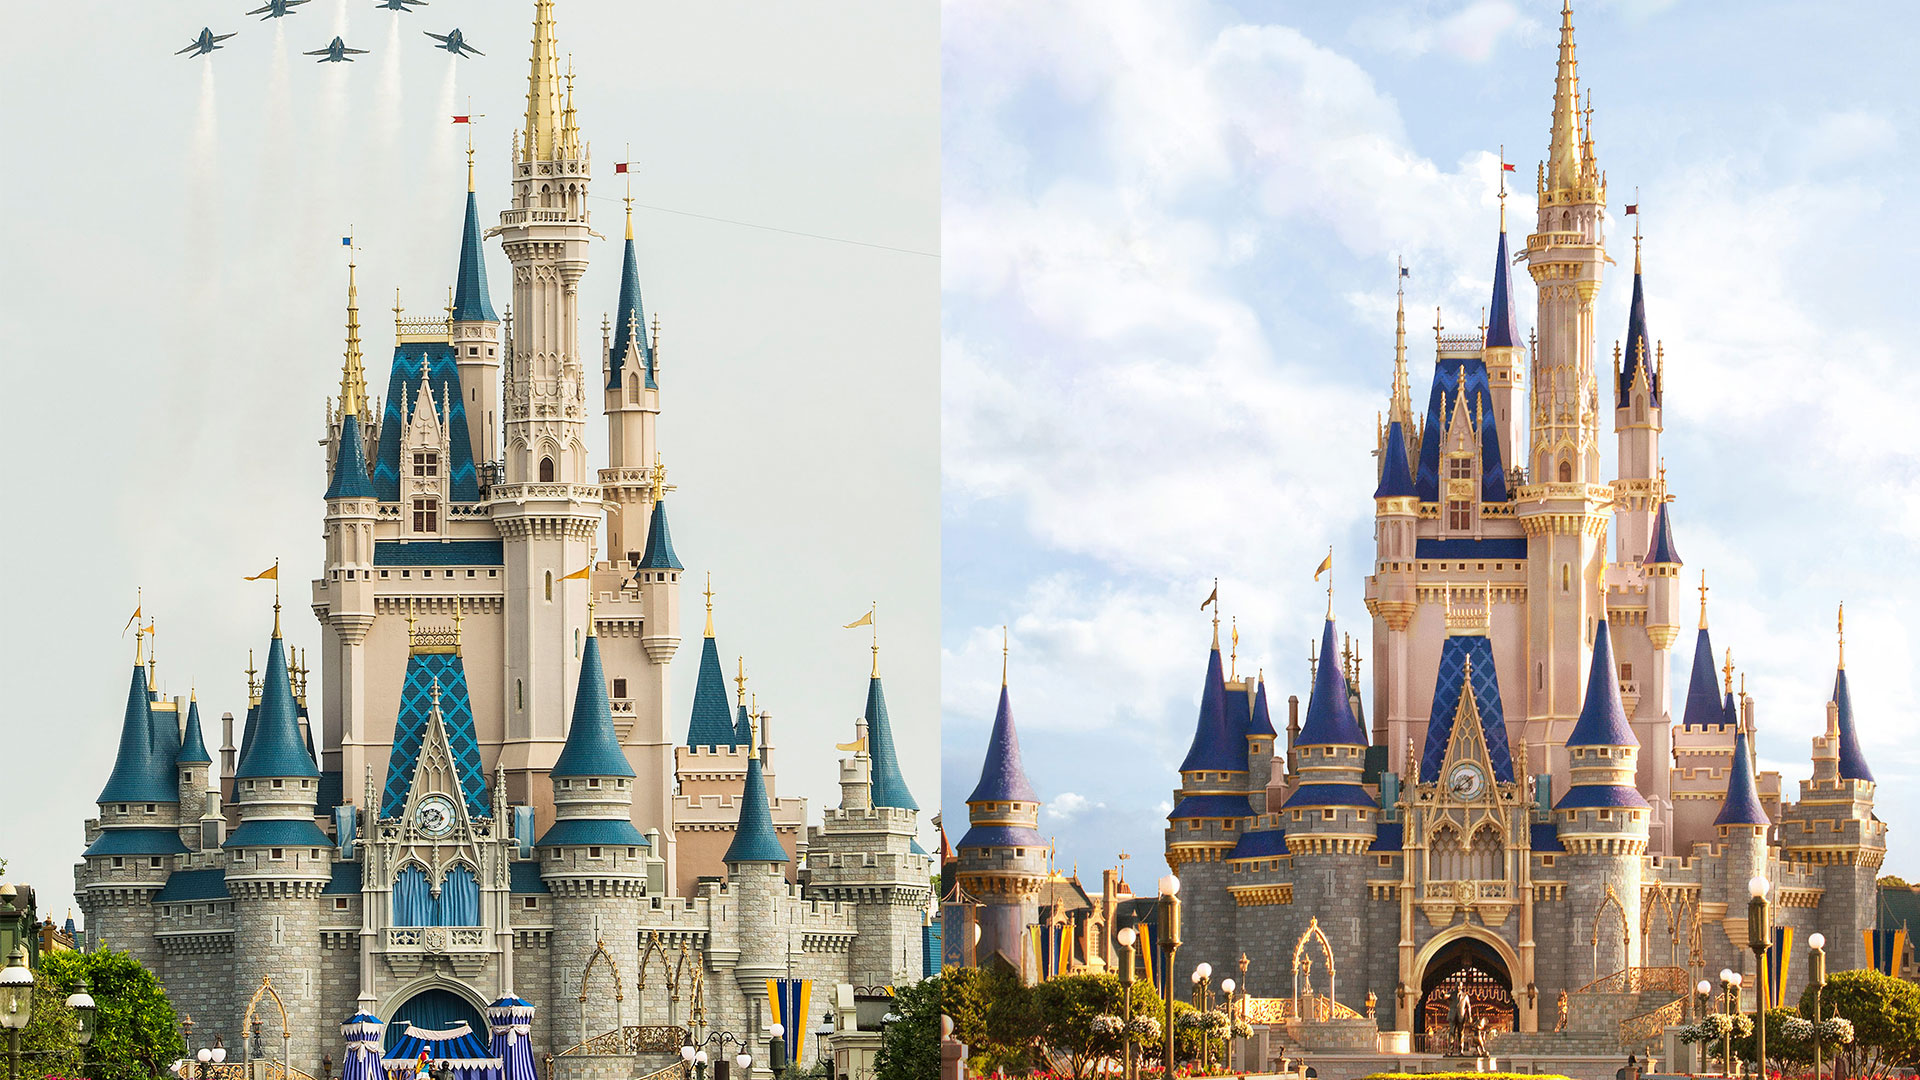 Cinderella's Castle at Disney World is Getting a Glam New Makeover